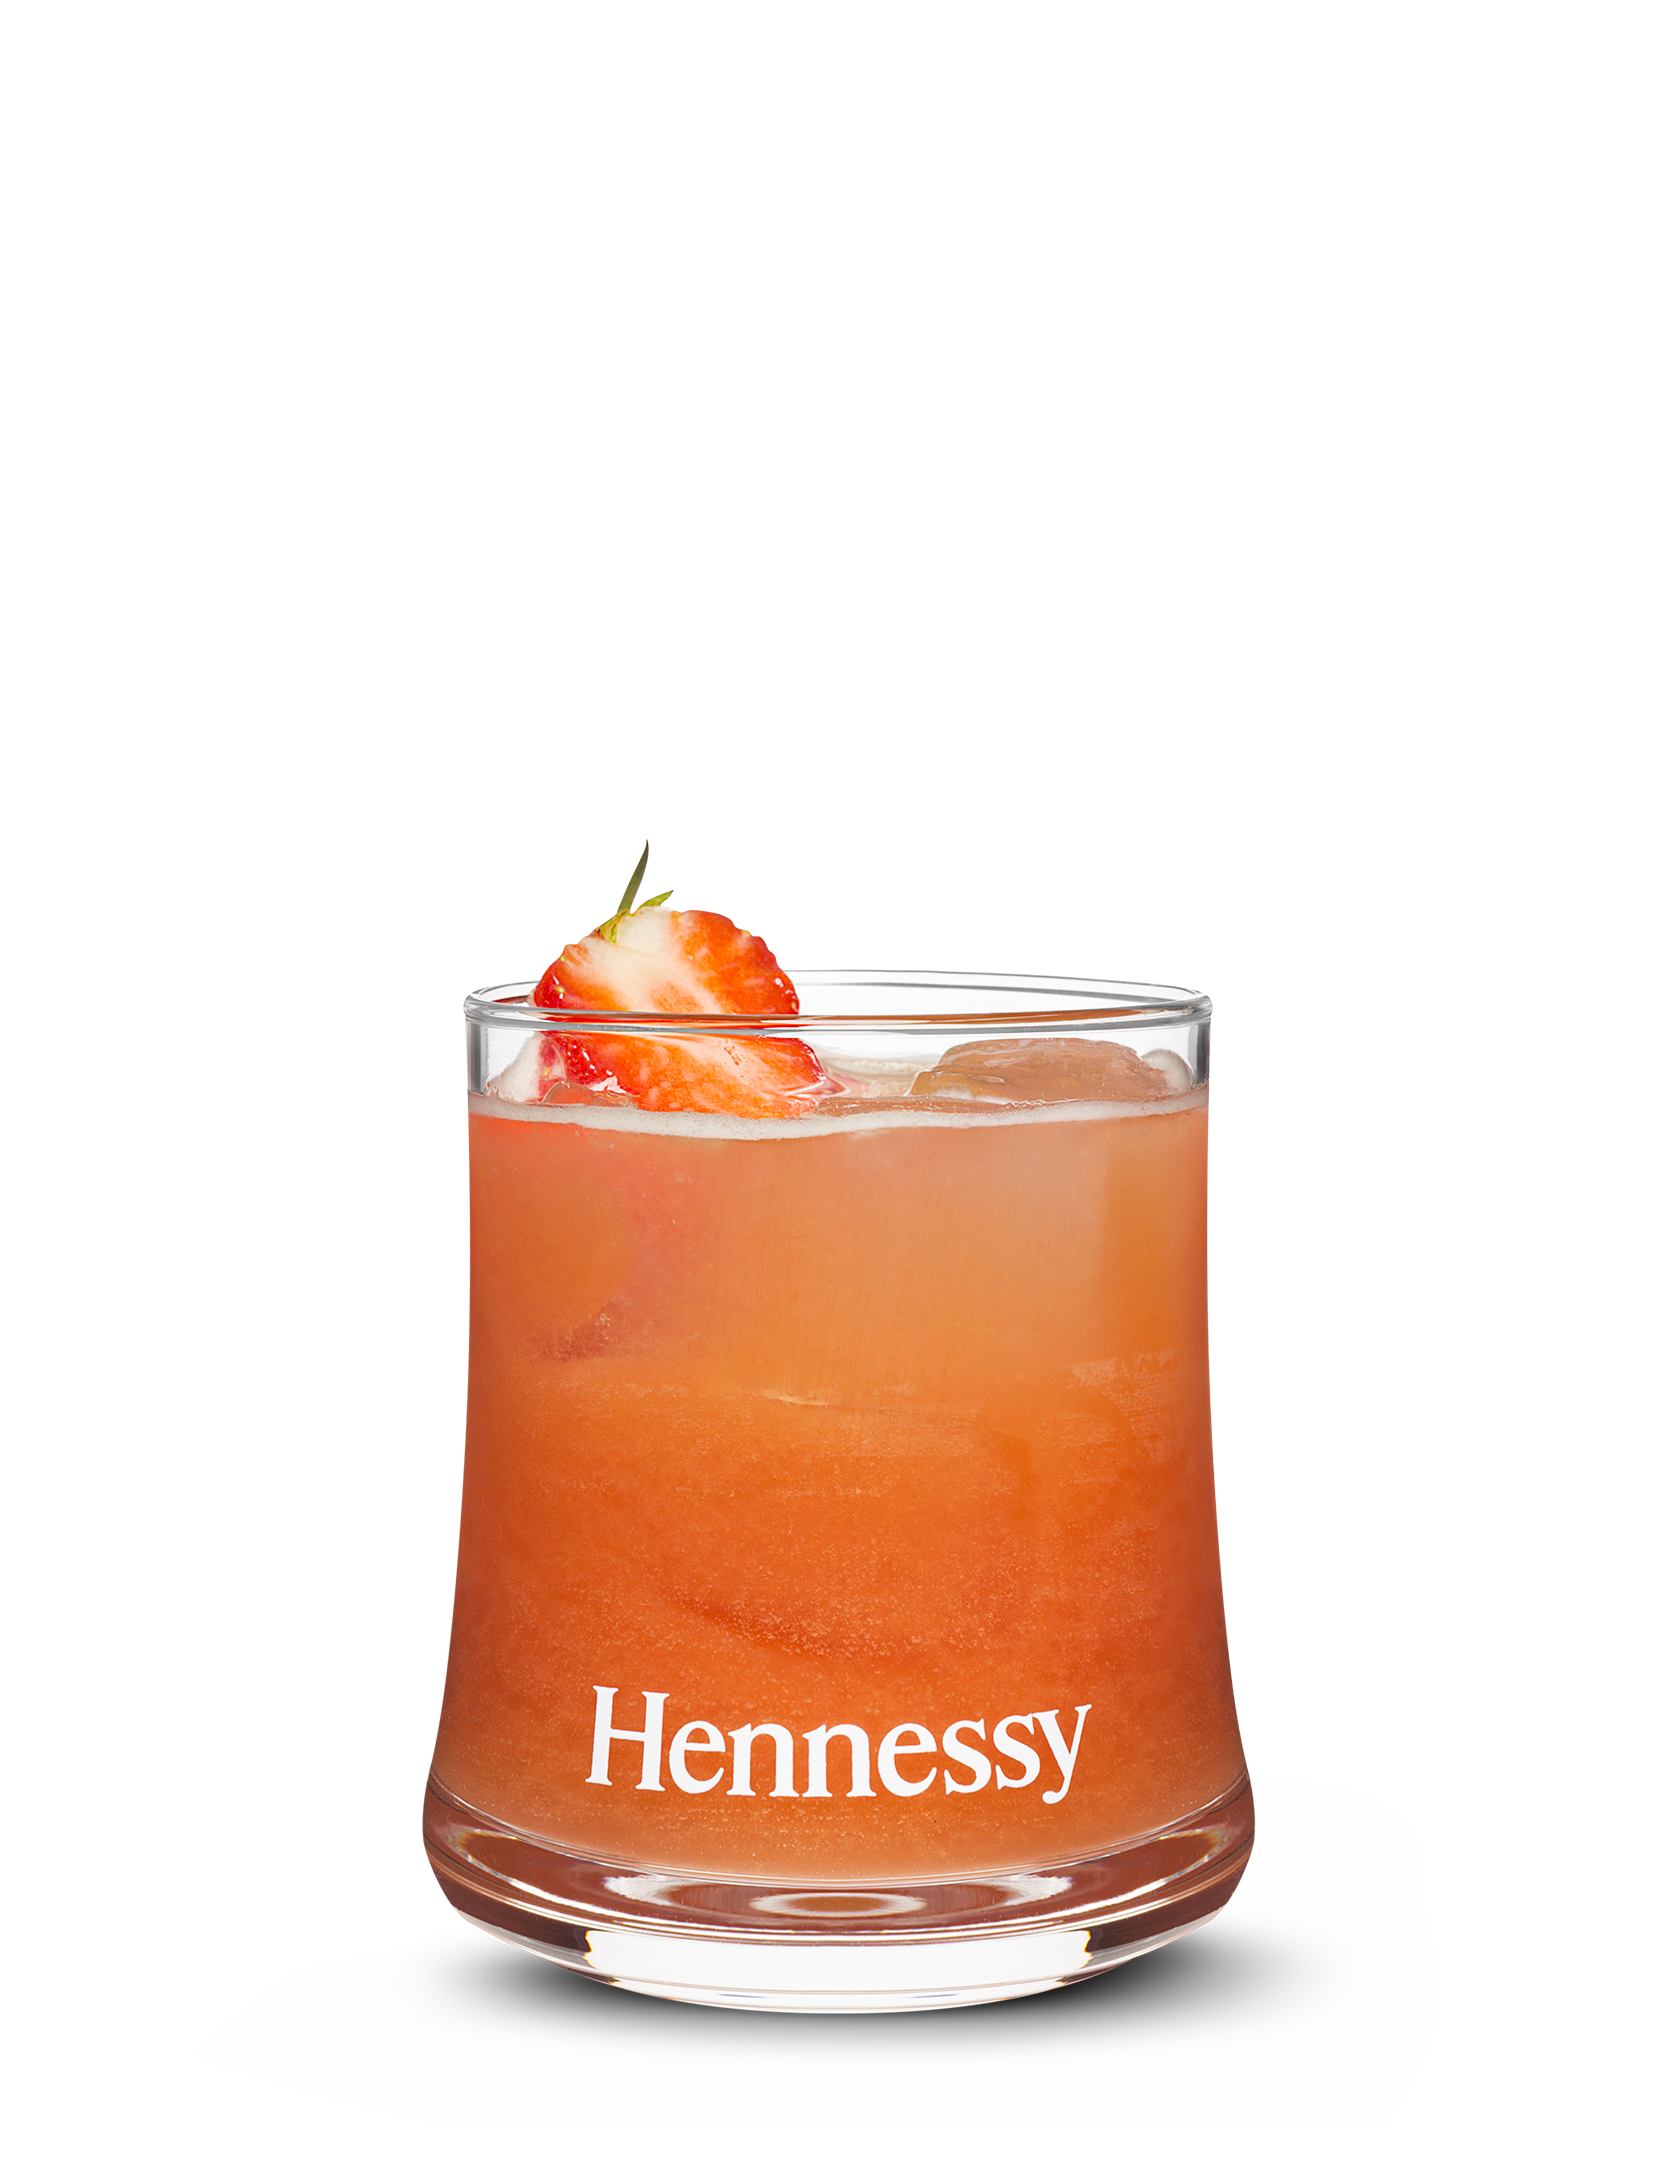 221-HENNESSY-GUAVA-SIMPL-RVB.png